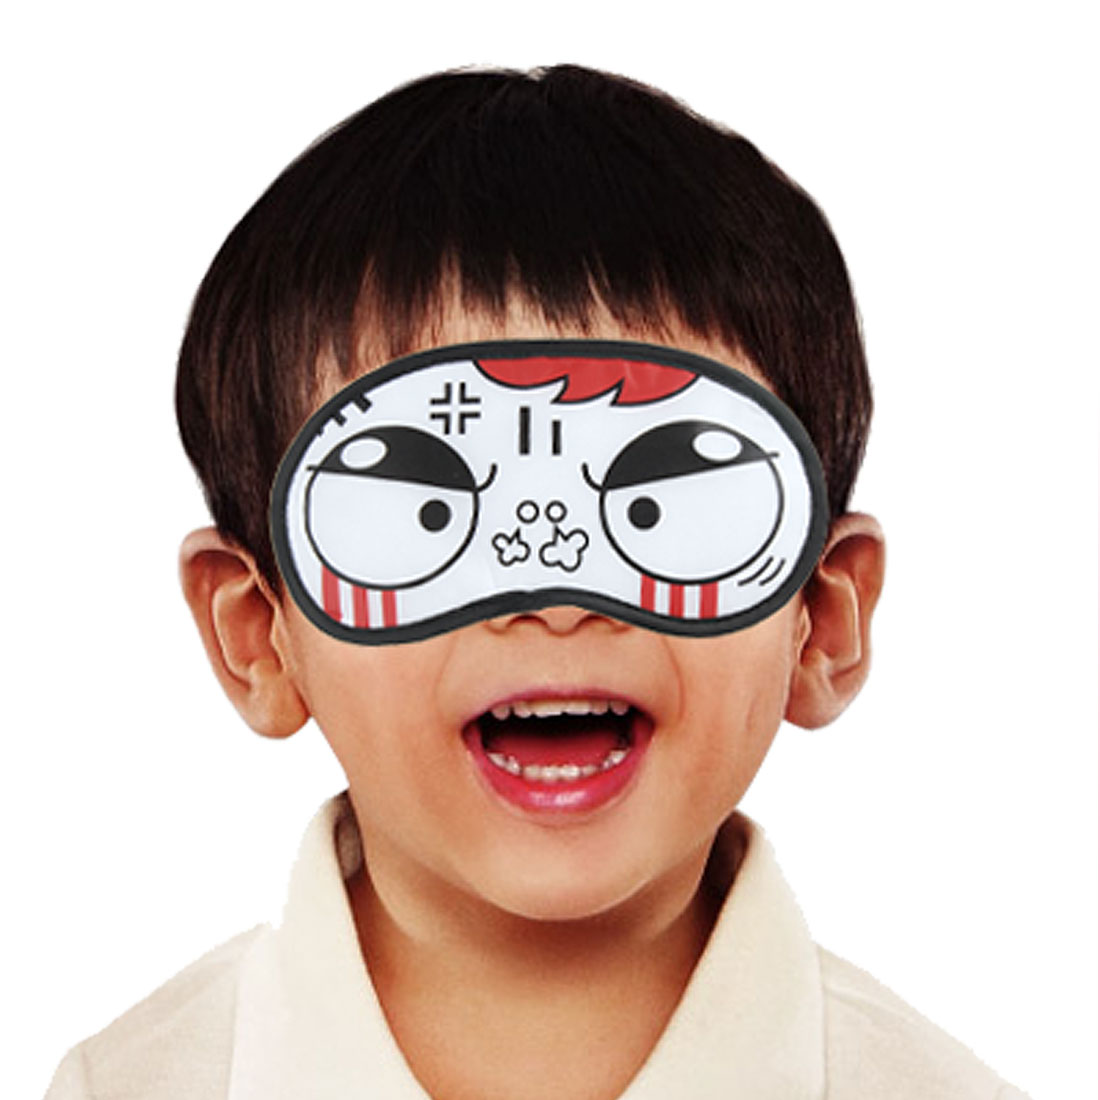 Black Rim Sad Cartoon Expression Eye Mask Shade